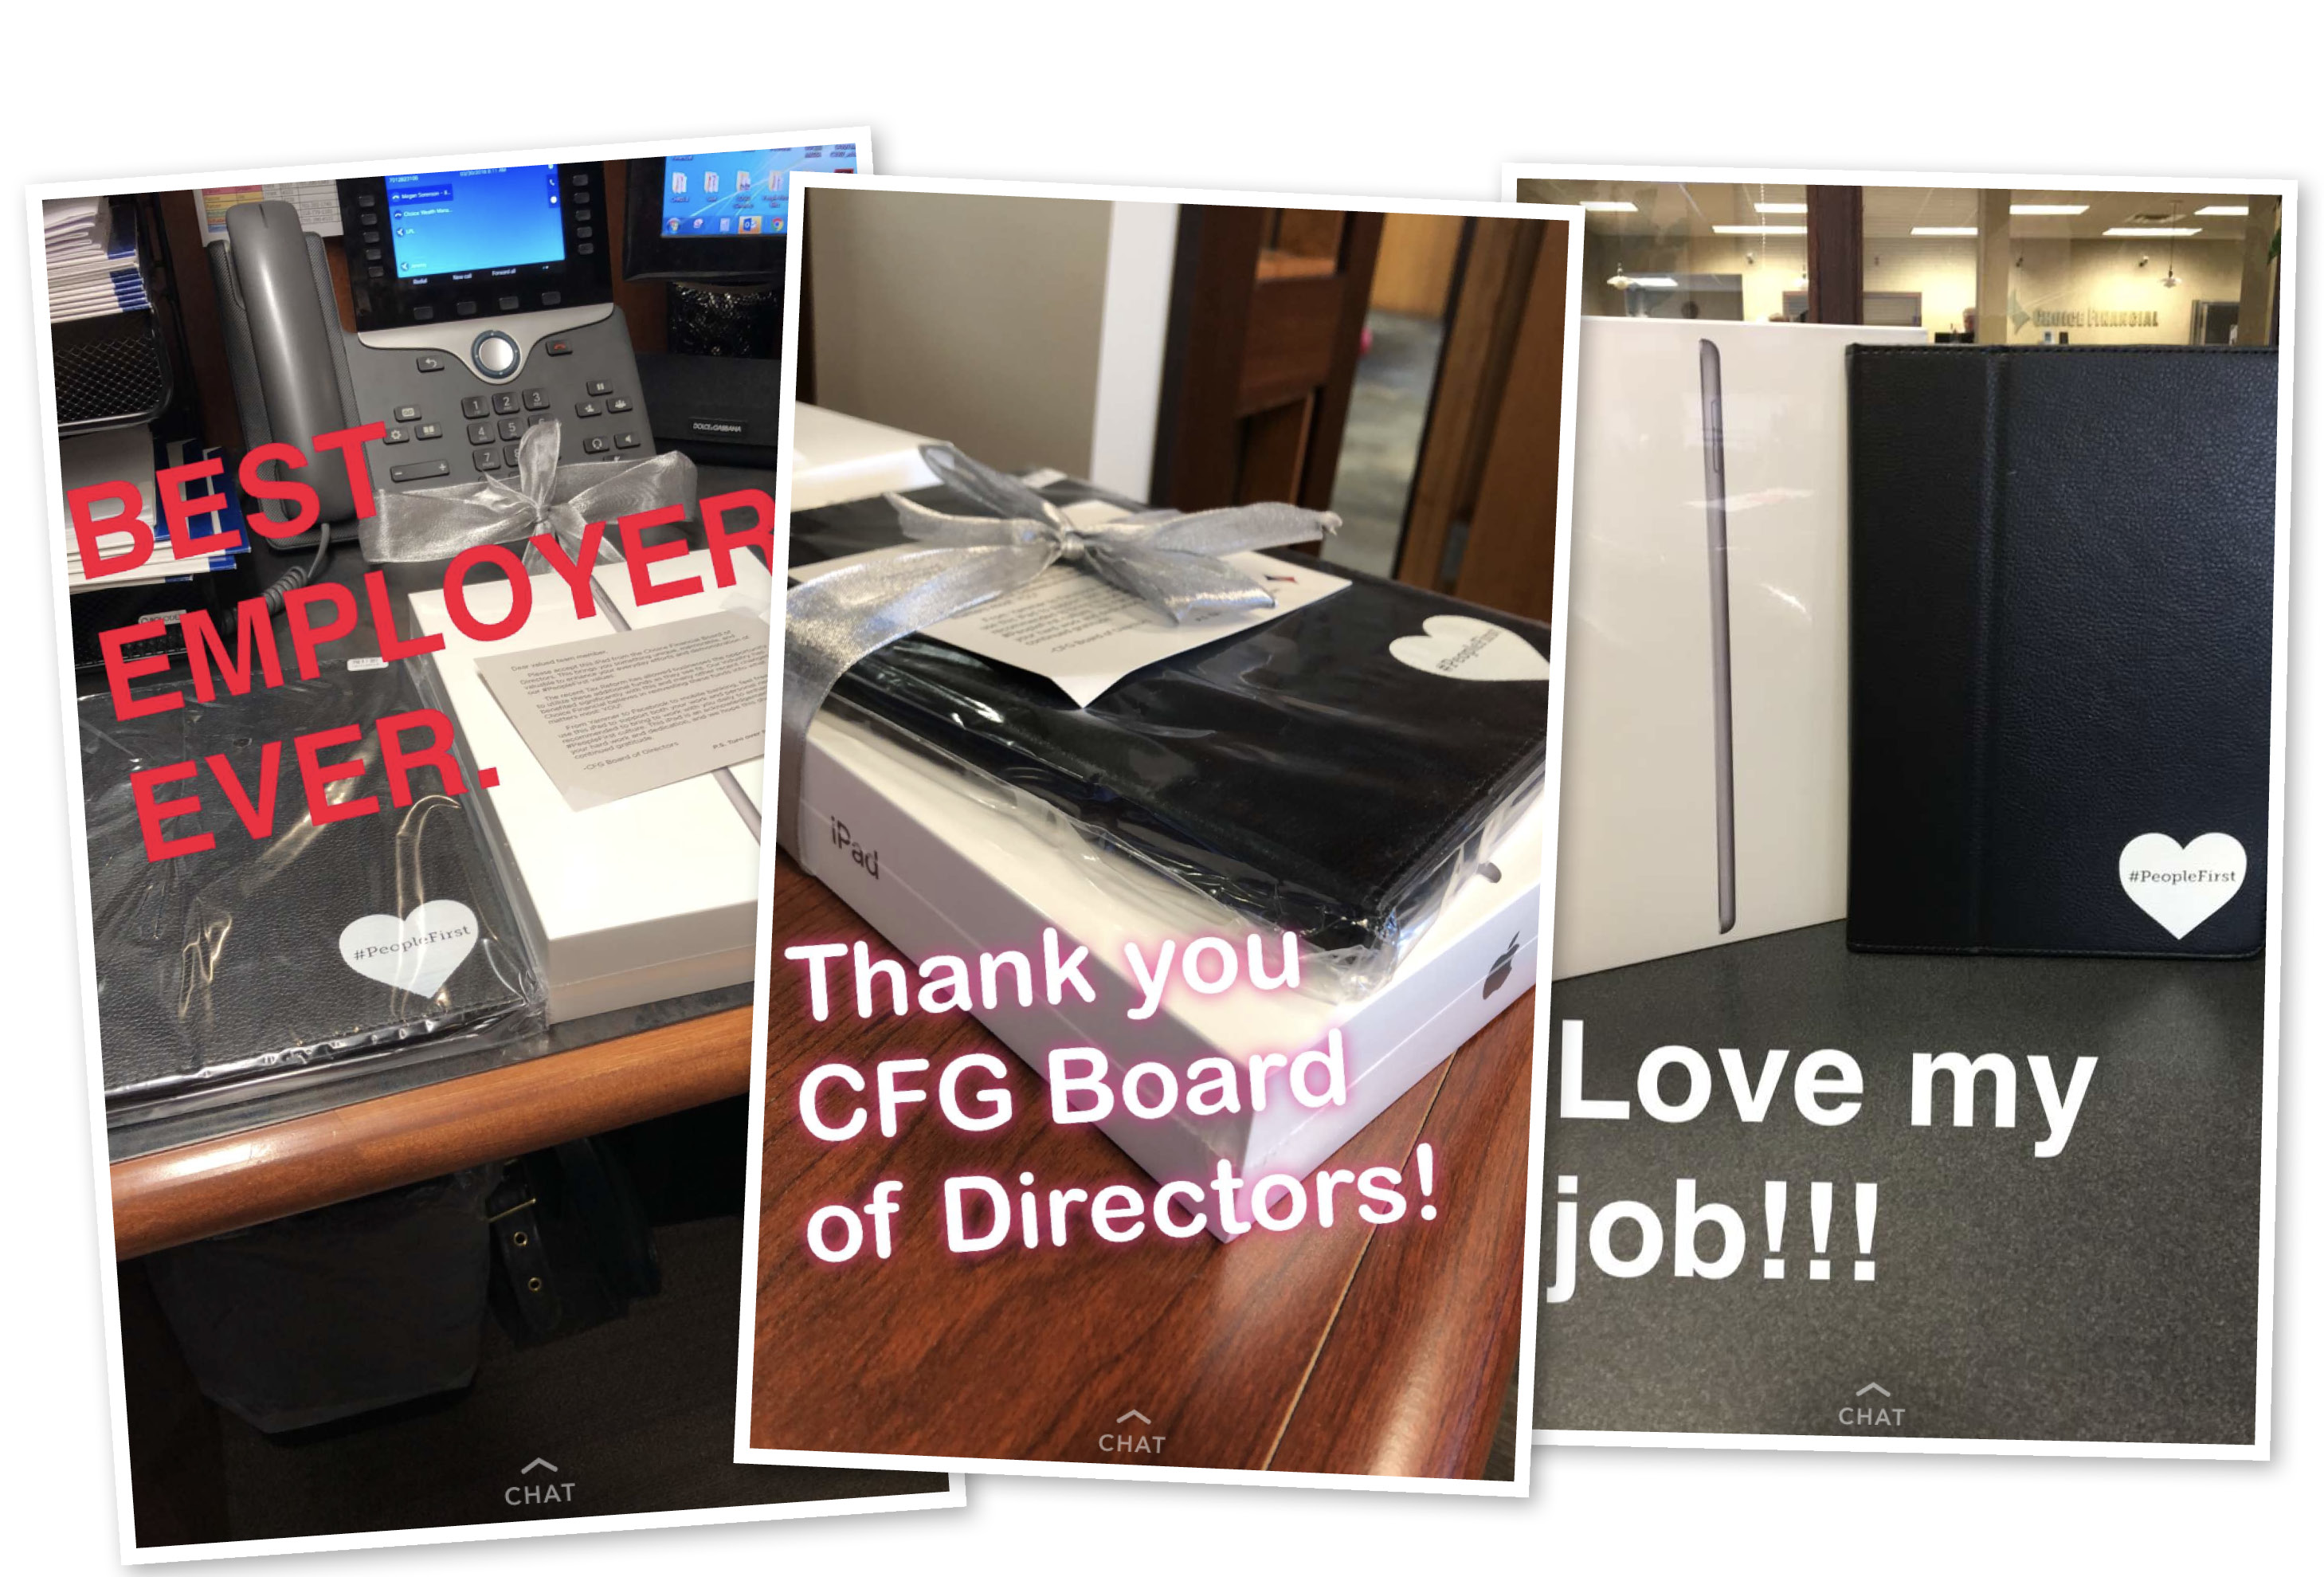 A few examples of excited reactions from our team members on social media after opening their gifts.